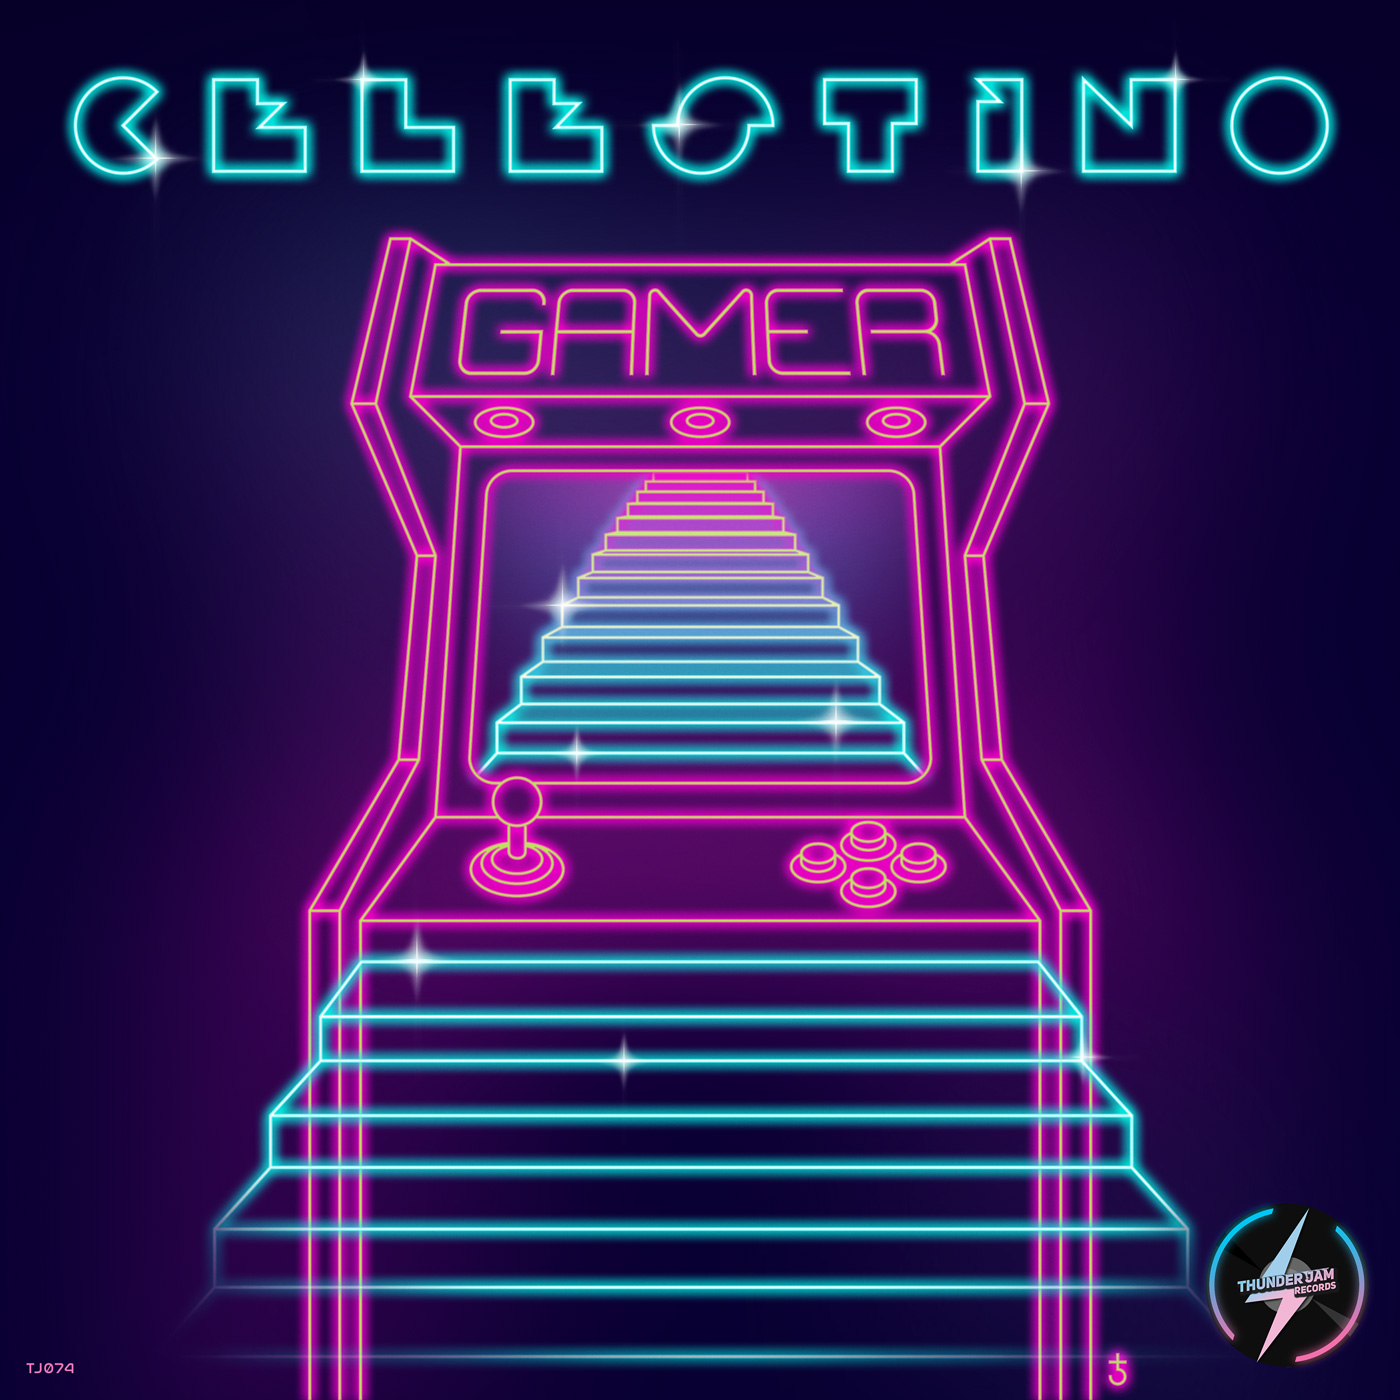 illustration_andre_levy_zhion_vector_pop_music_cover_celestino_ep_gamer_arcade_stairs_neon_retro_80s_nudisco.jpg